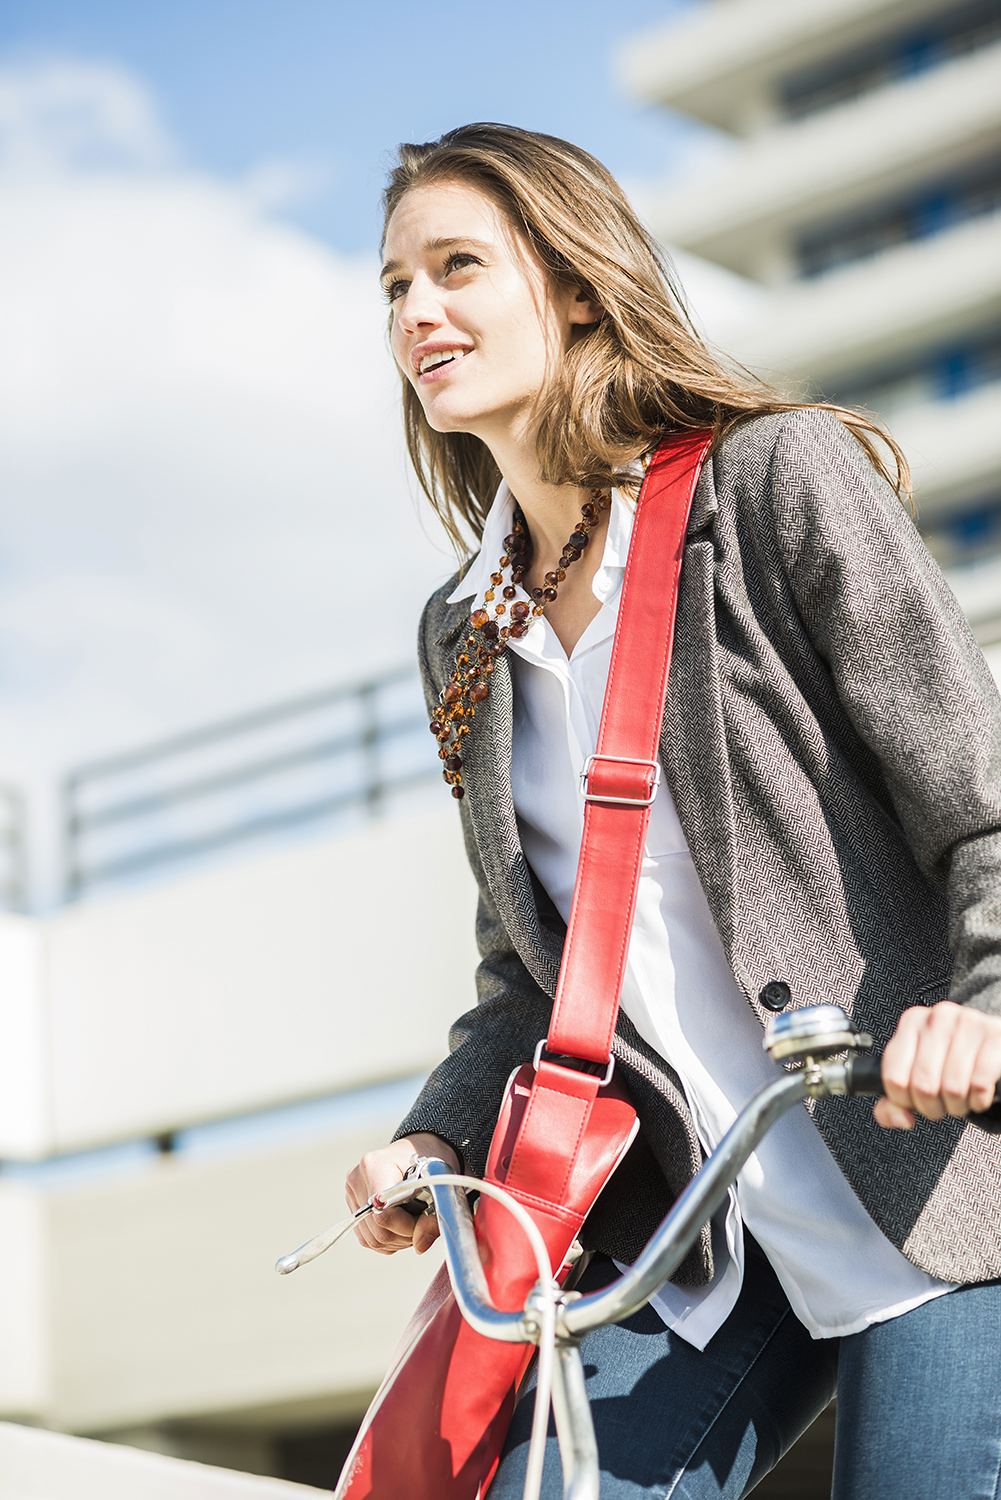 Smiling young woman with bicycle